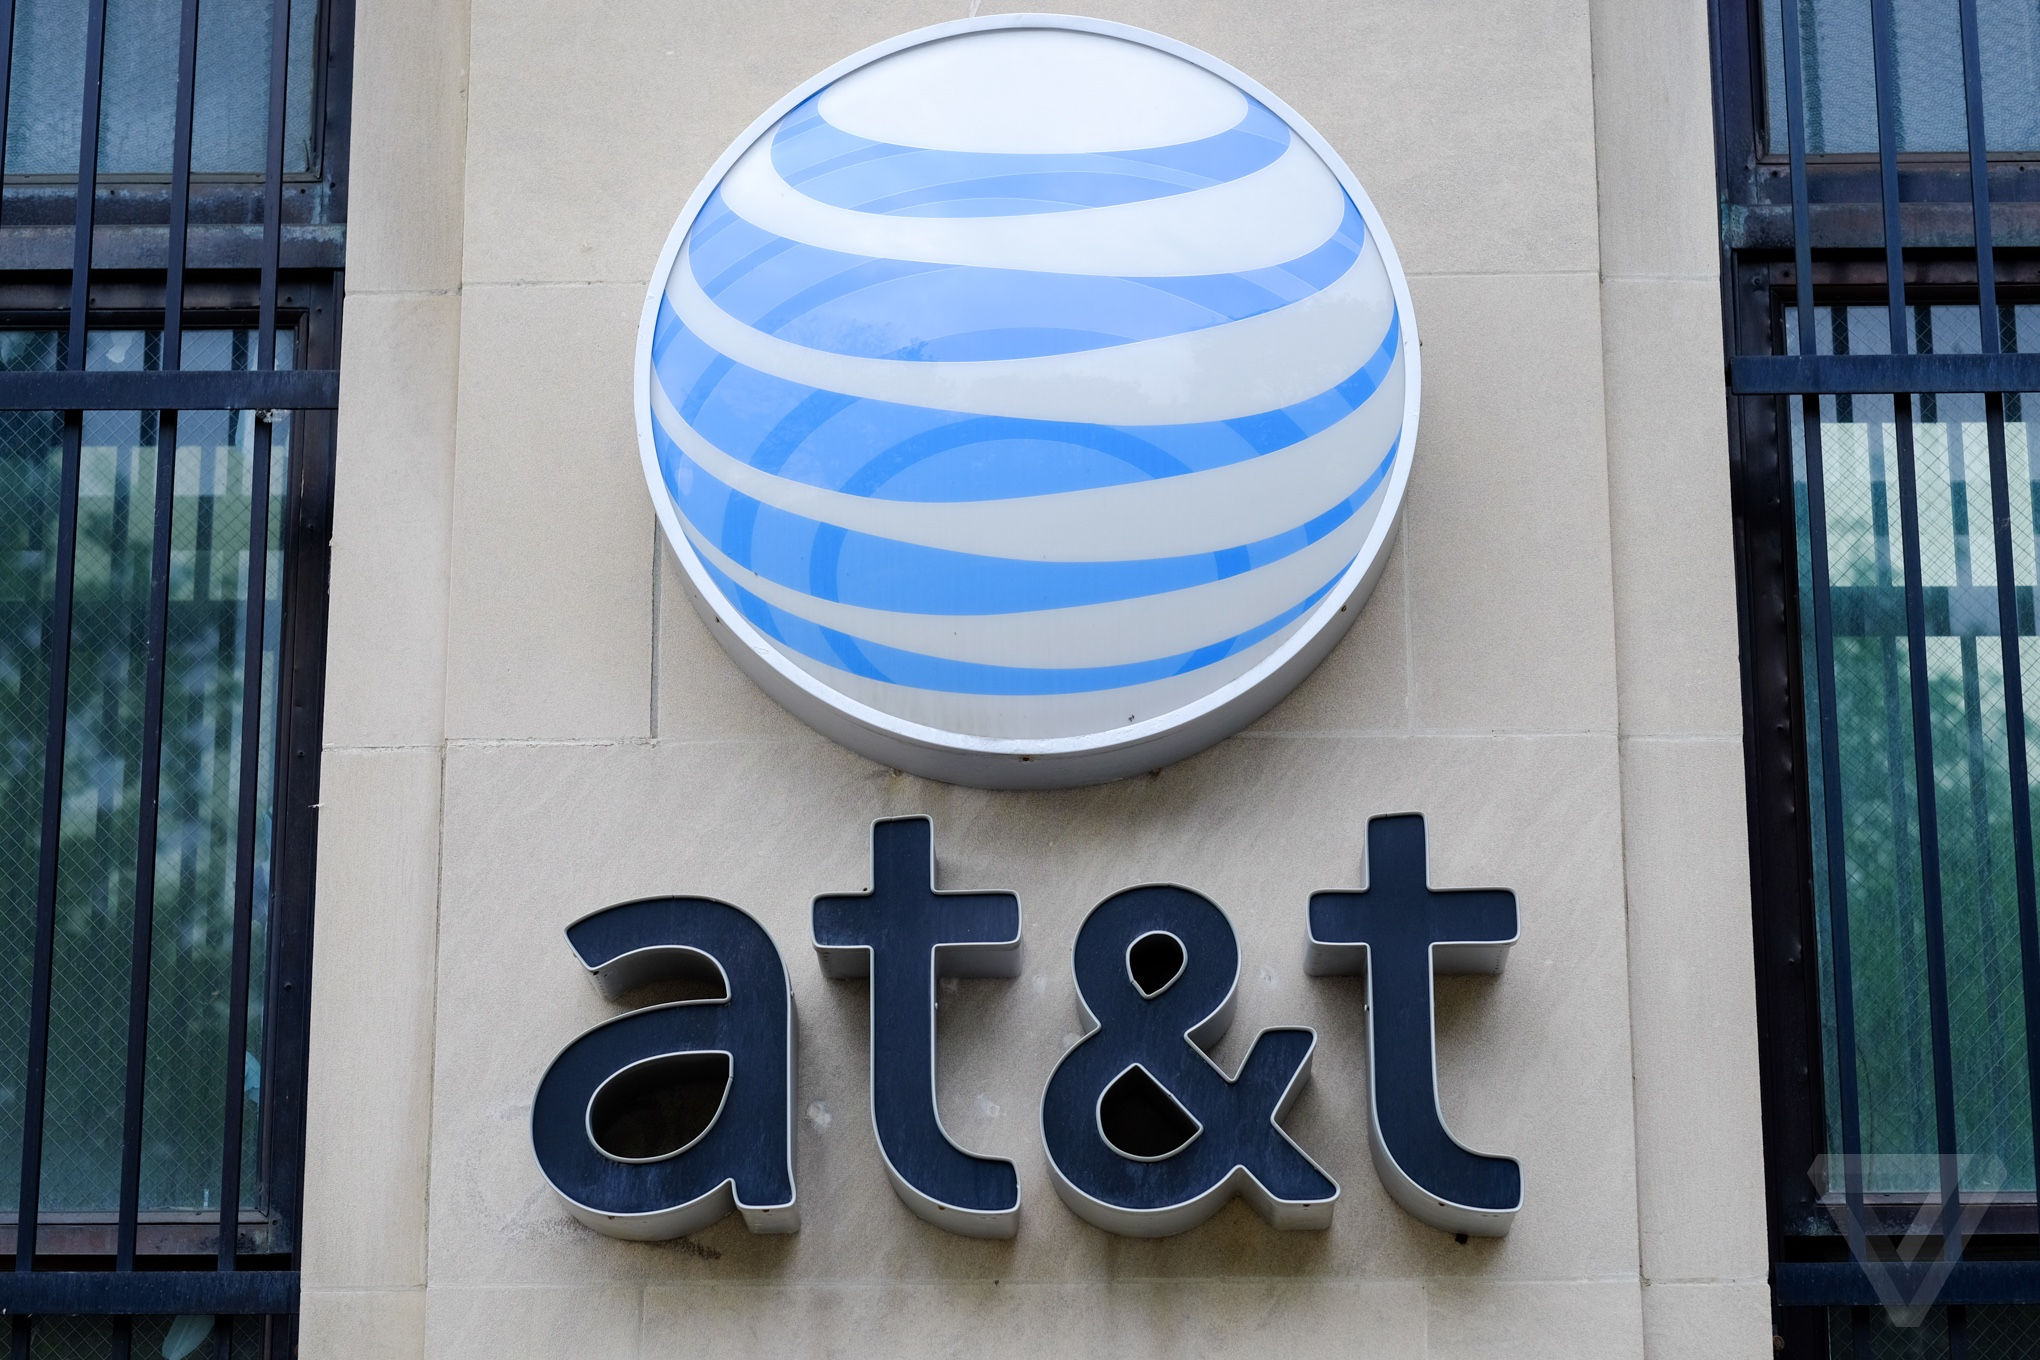 Hacker paid AT&T employees thousands to unlock millions of phones